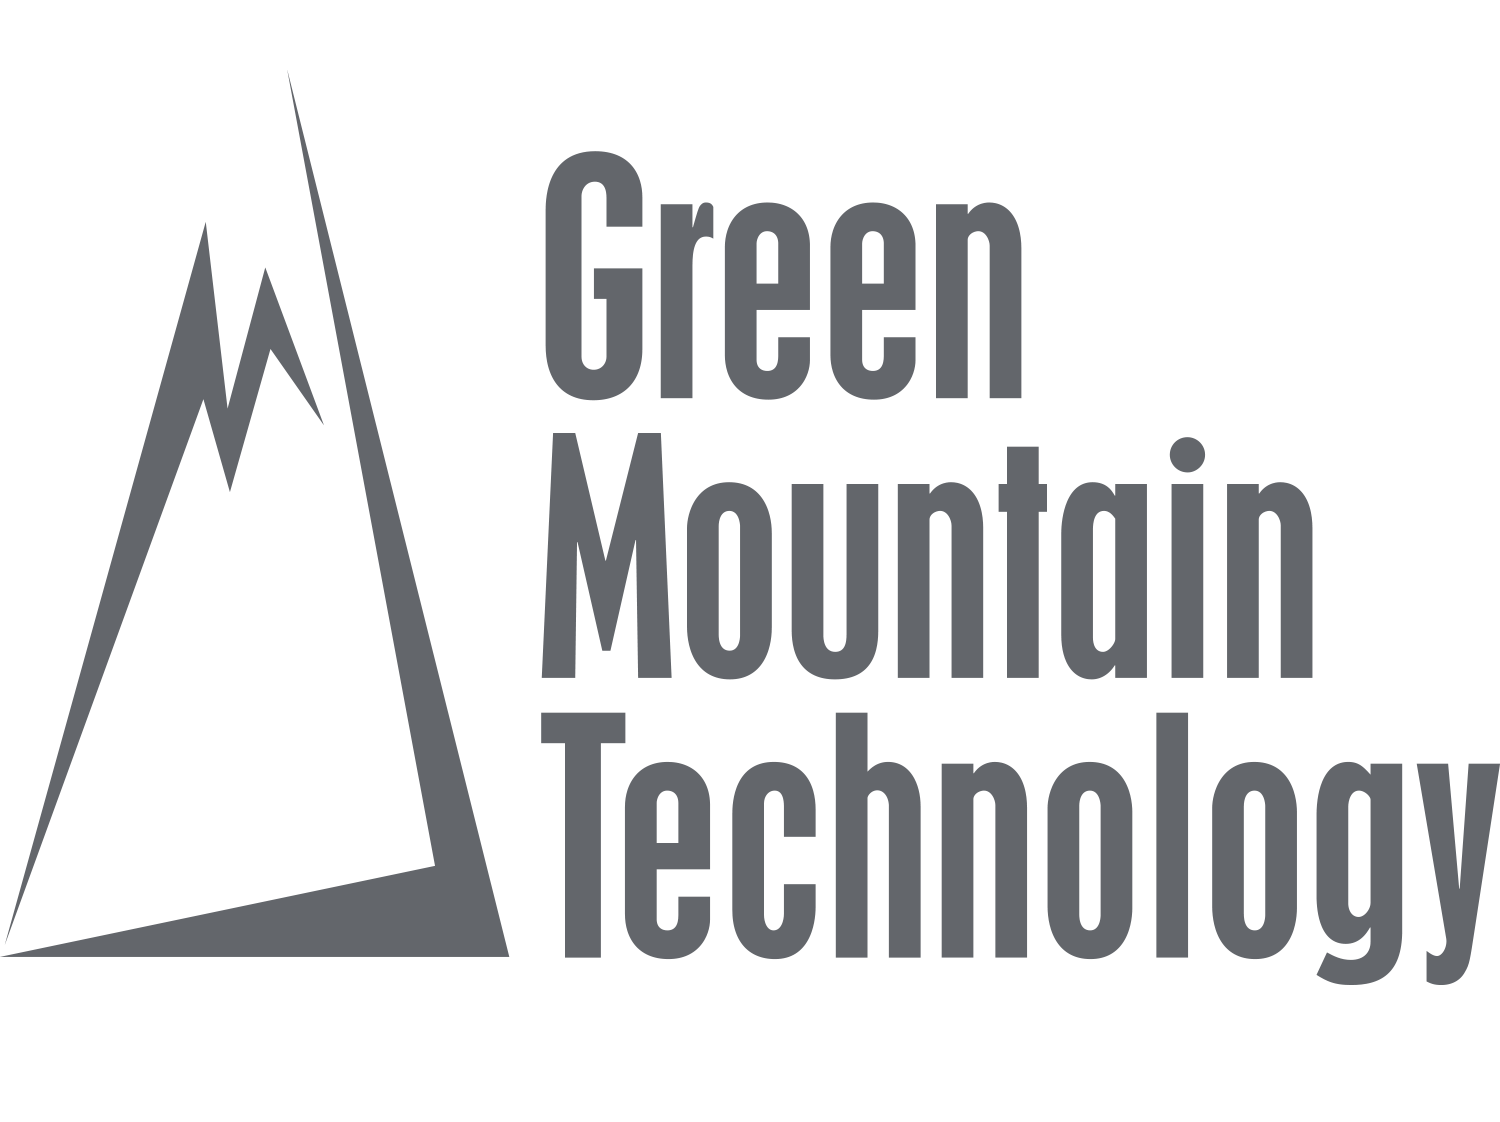 Green Mountain Technology Logo